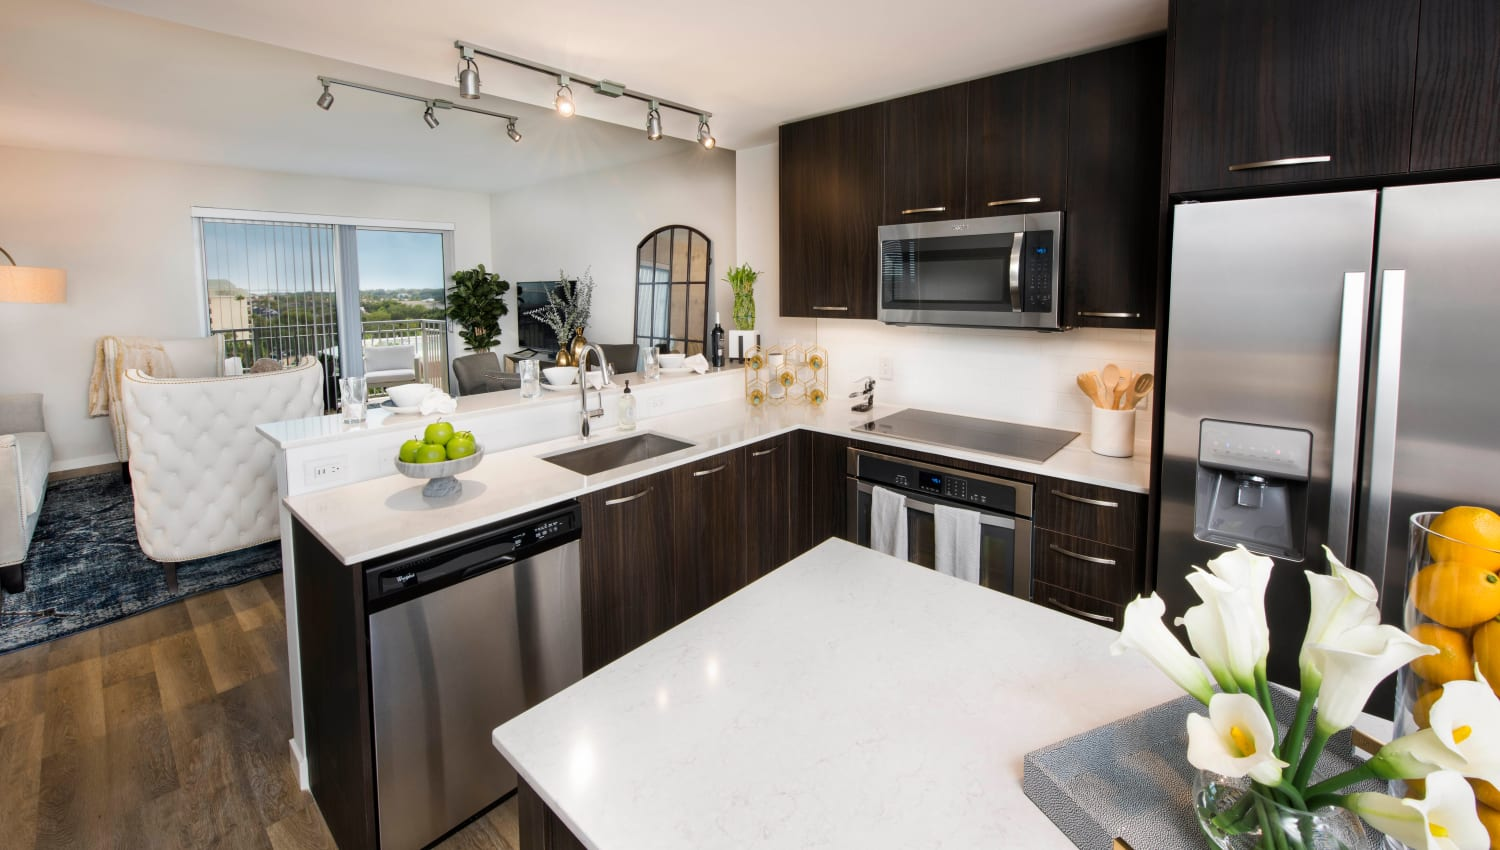 View of the dining and living areas over the breakfast bar in a model apartment's kitchen at Olympus Harbour Island in Tampa, Florida